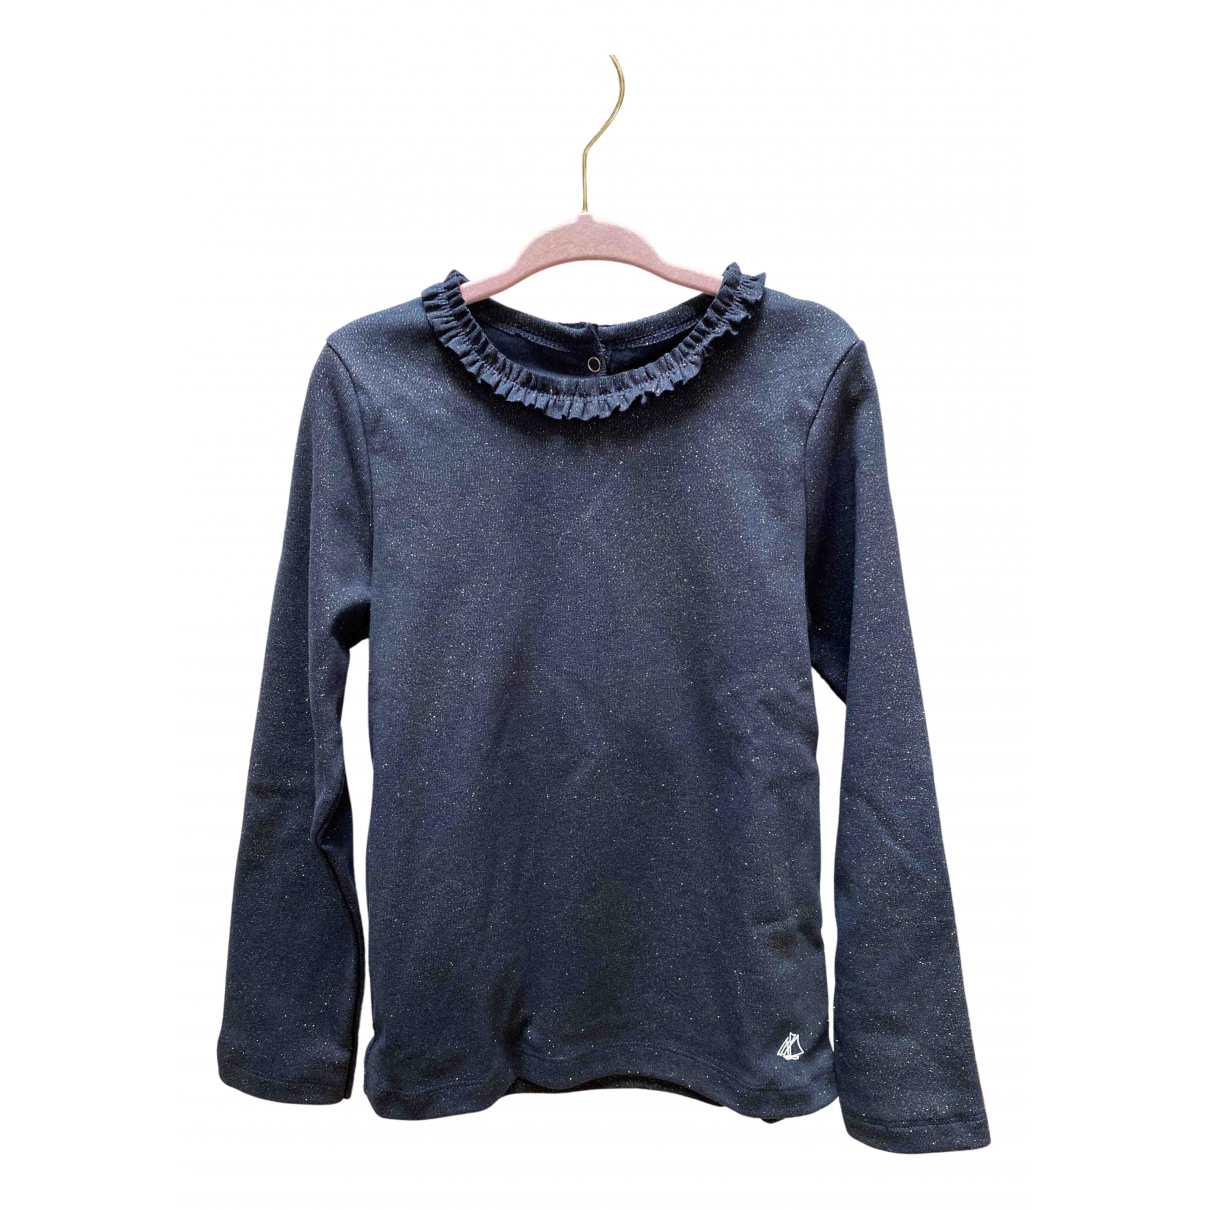 Petit Bateau N Blue Cotton  top for Kids 6 years - up to 114cm FR